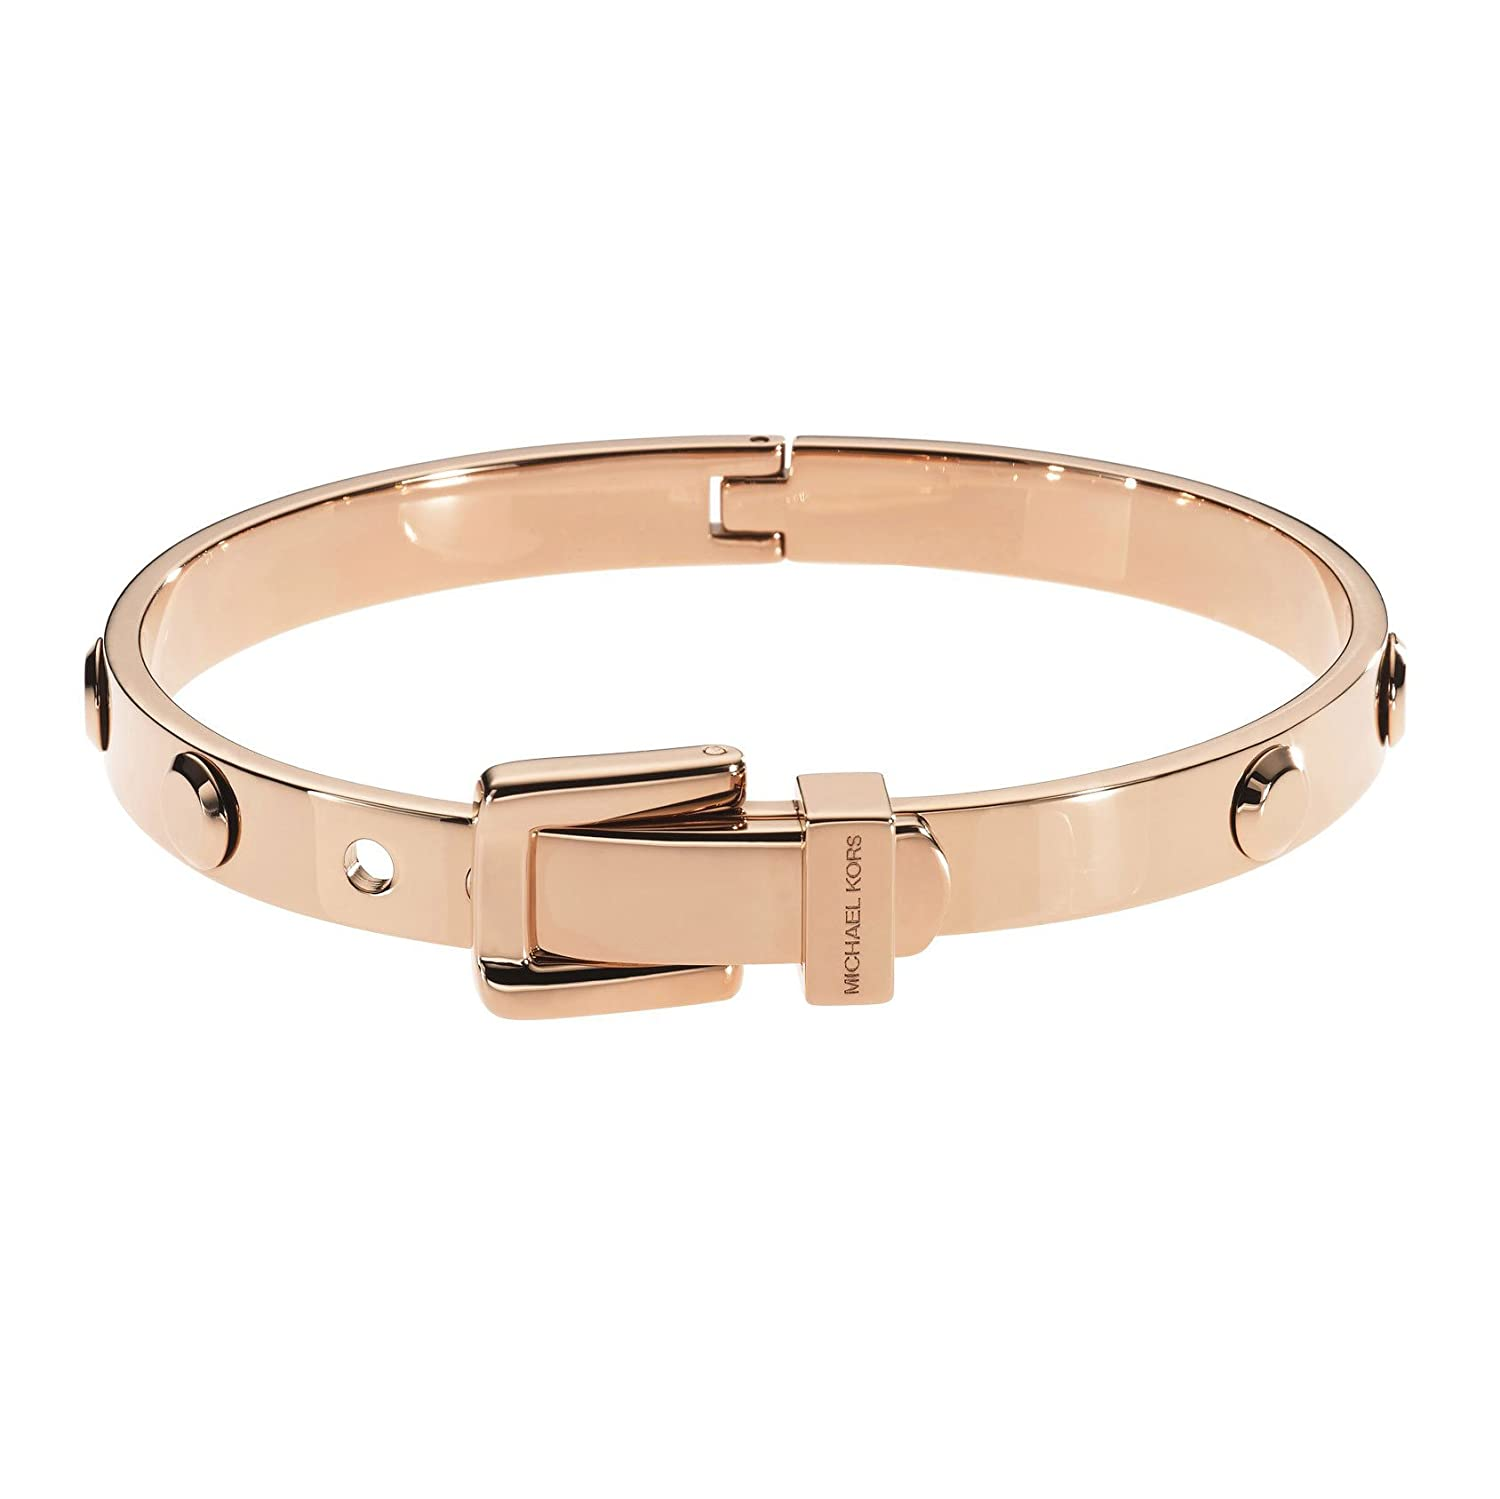 Amazoncom Michael Kors MKJ1821 Rose Gold Astor Buckle Bangle